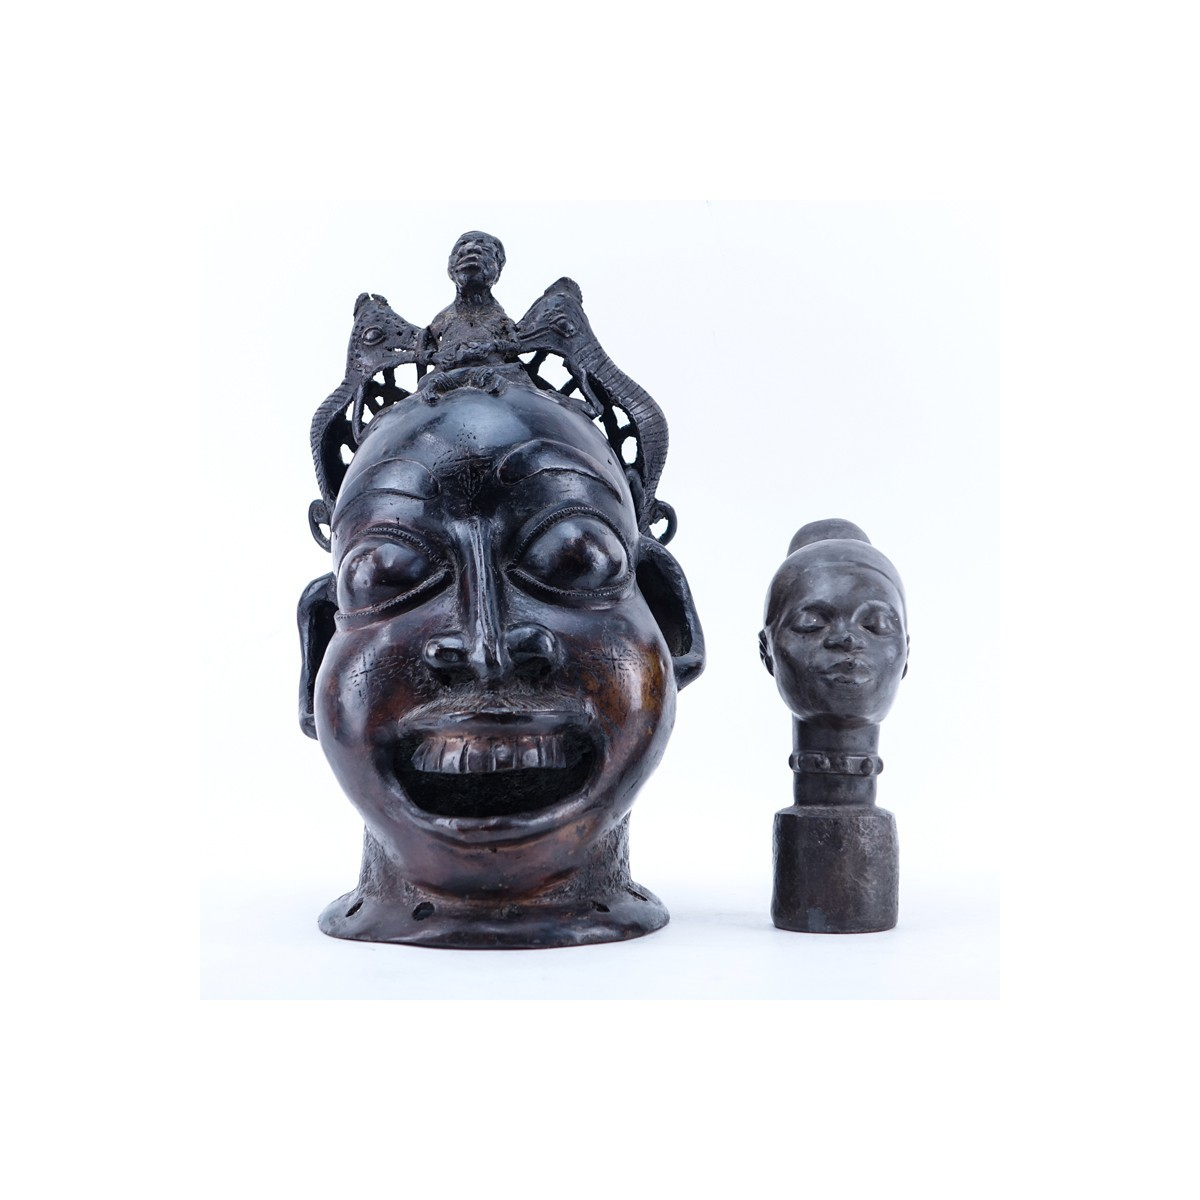 Group of Two (2): African Bronze Sculpture and a Stoneware Sculpture, Each 20th C. Heads of Benin.